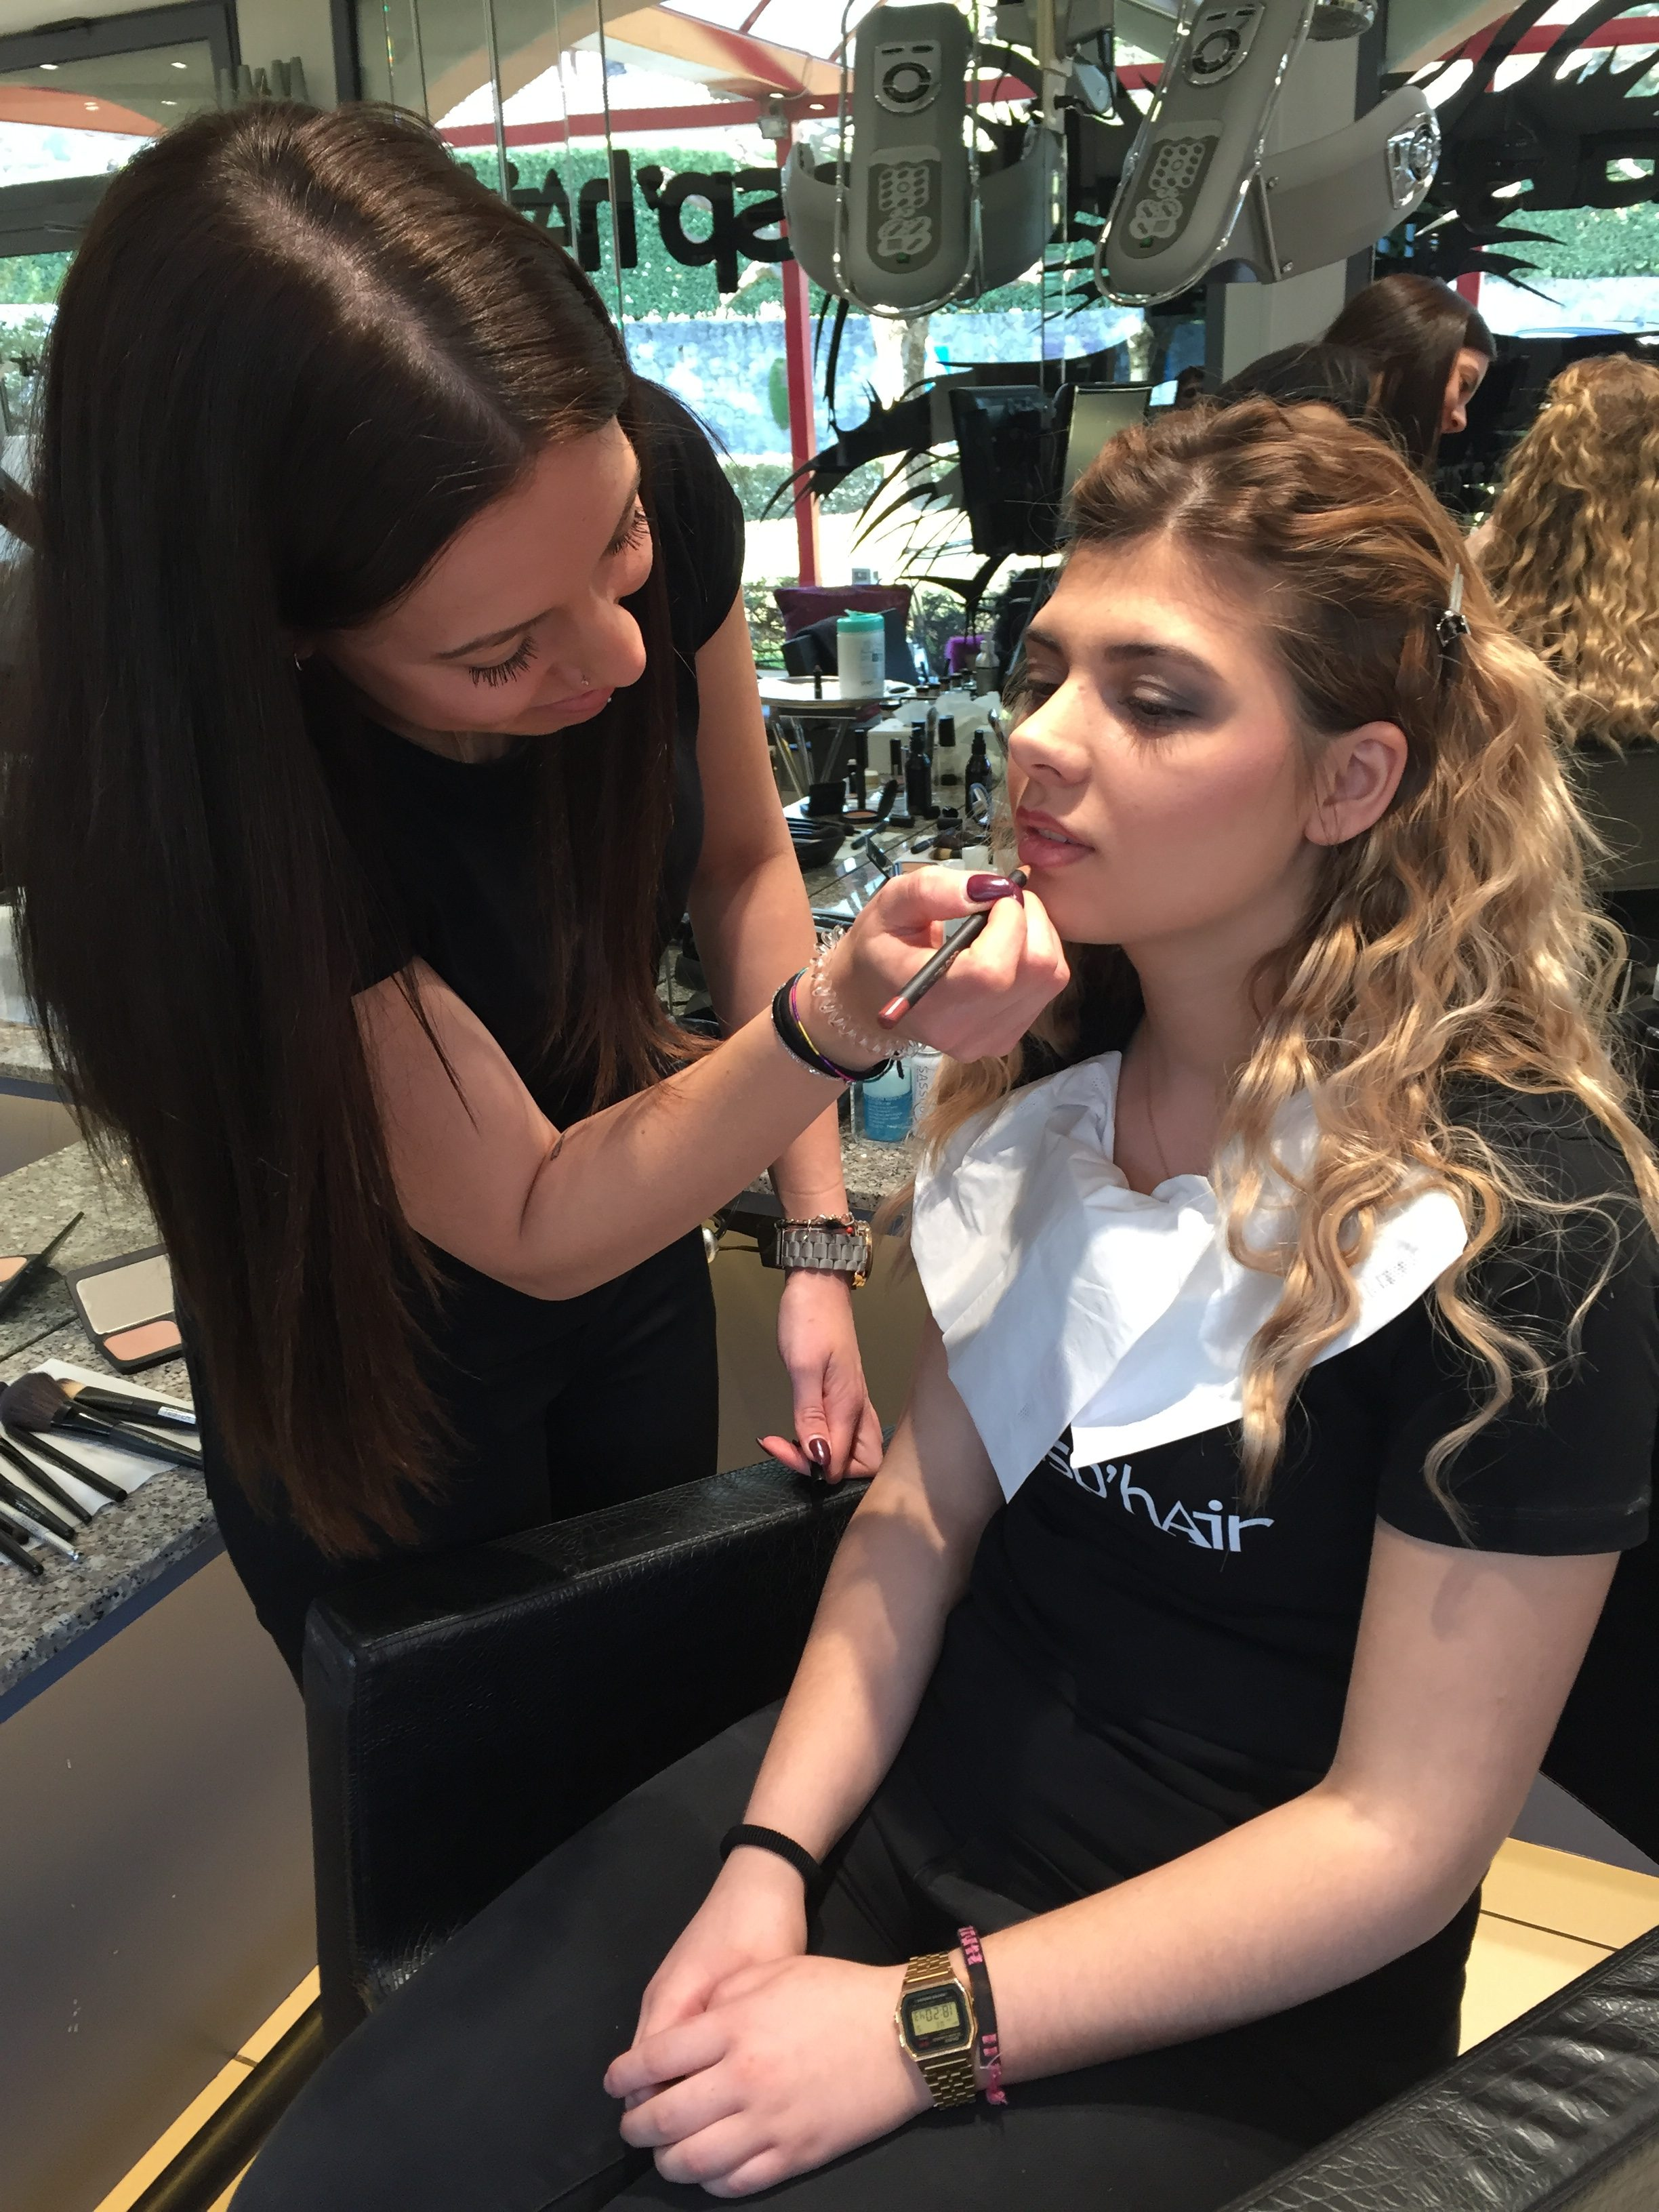 equipe-atmosphair-pully-maquillage